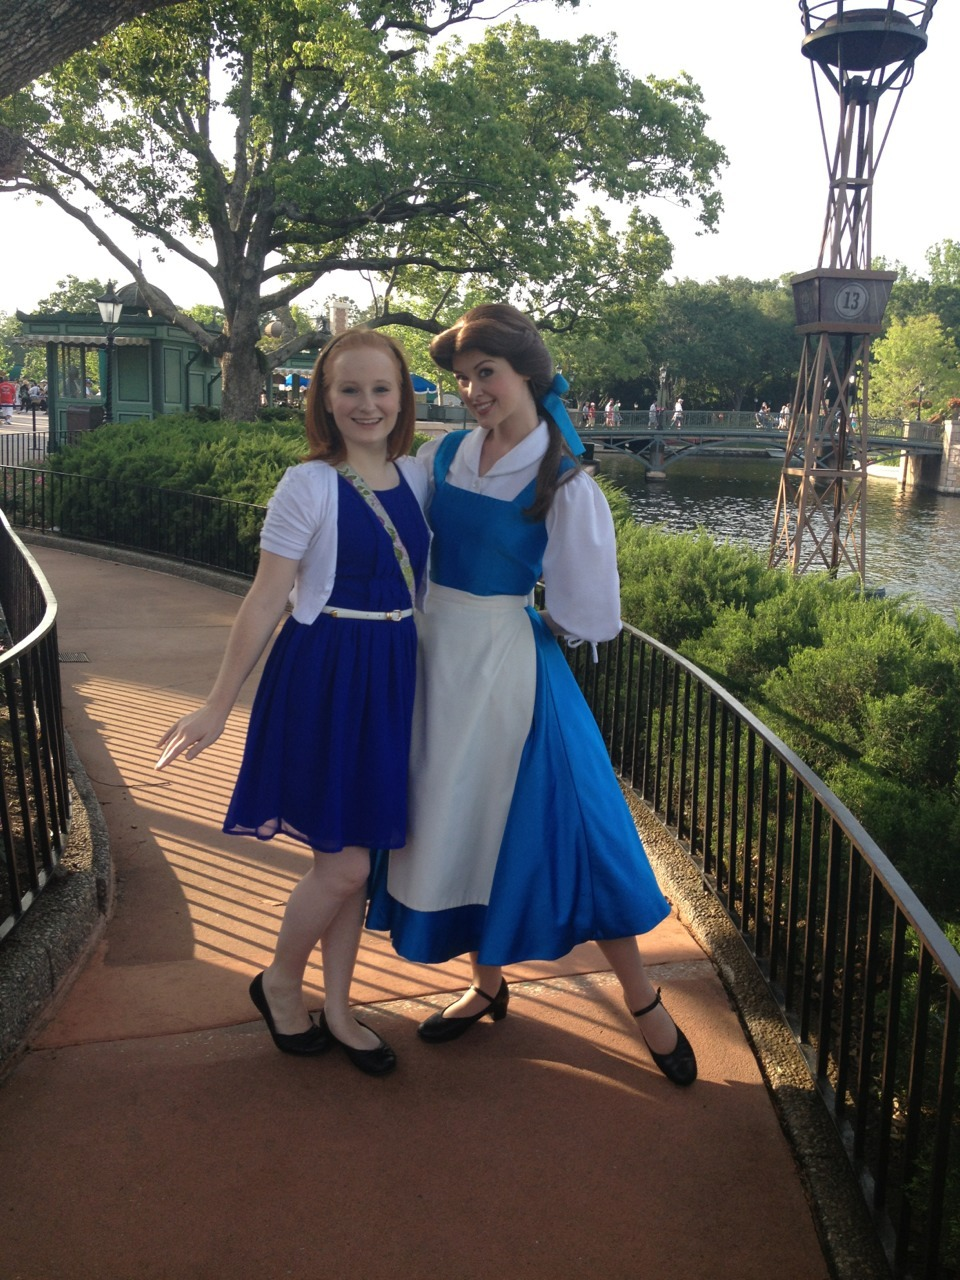 goingthedistancedcp:  Disneybounding today! Belle noticed and she loved it!